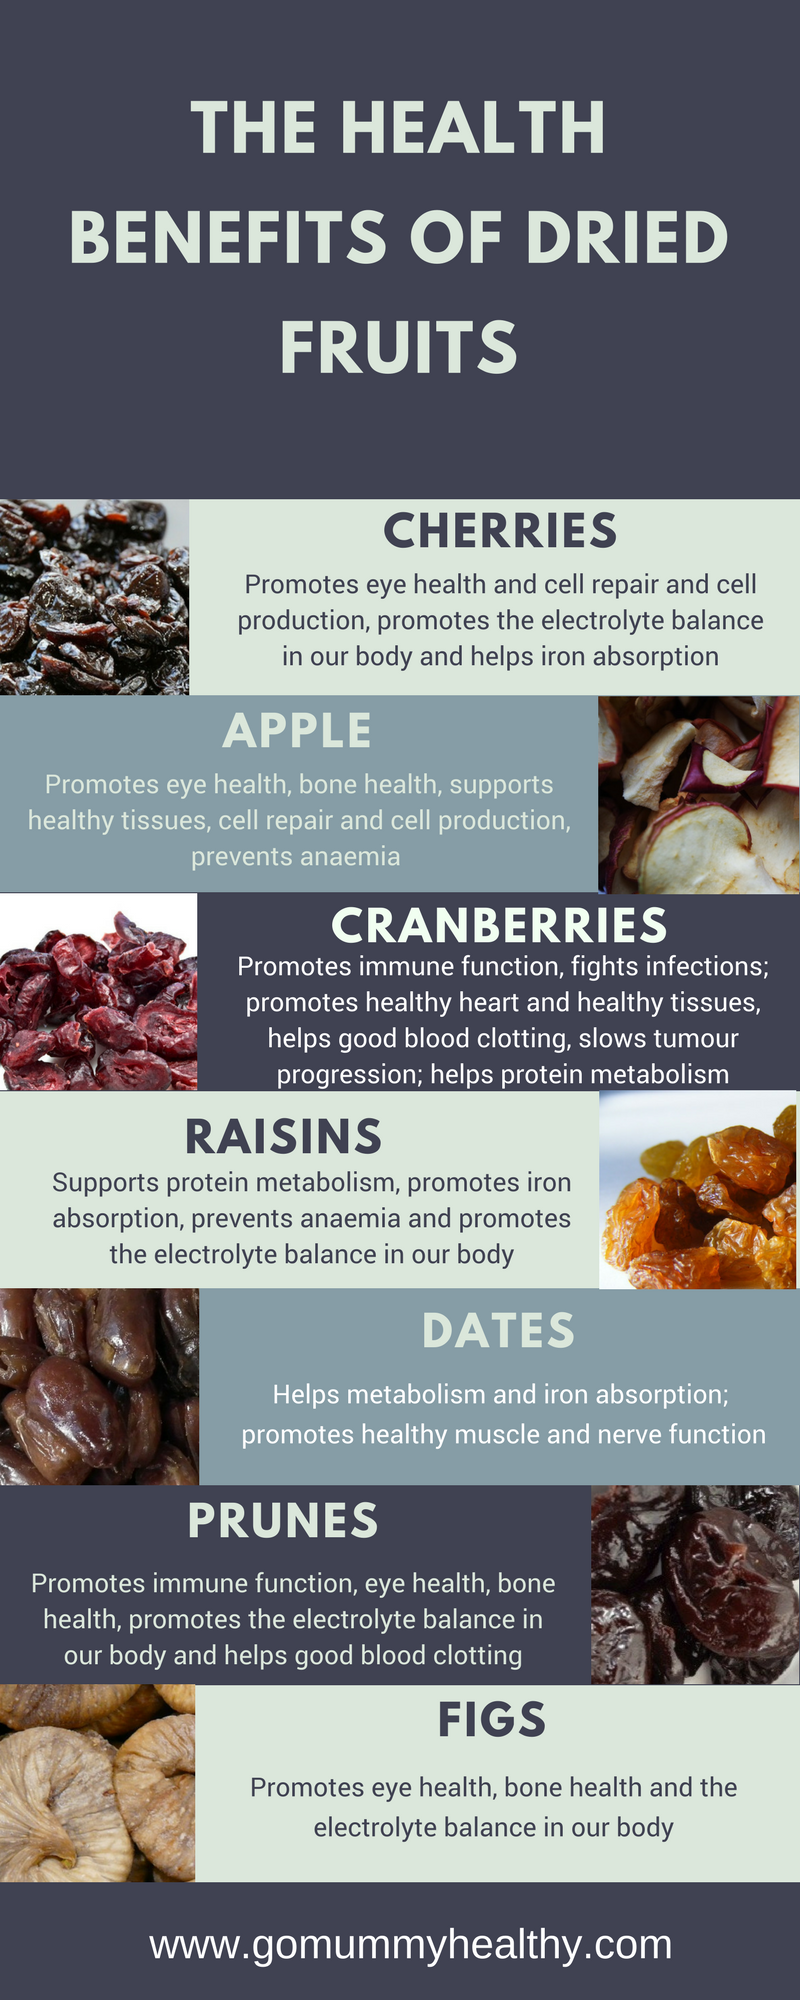 The health benefits of 7 dried fruits - 5-a-day